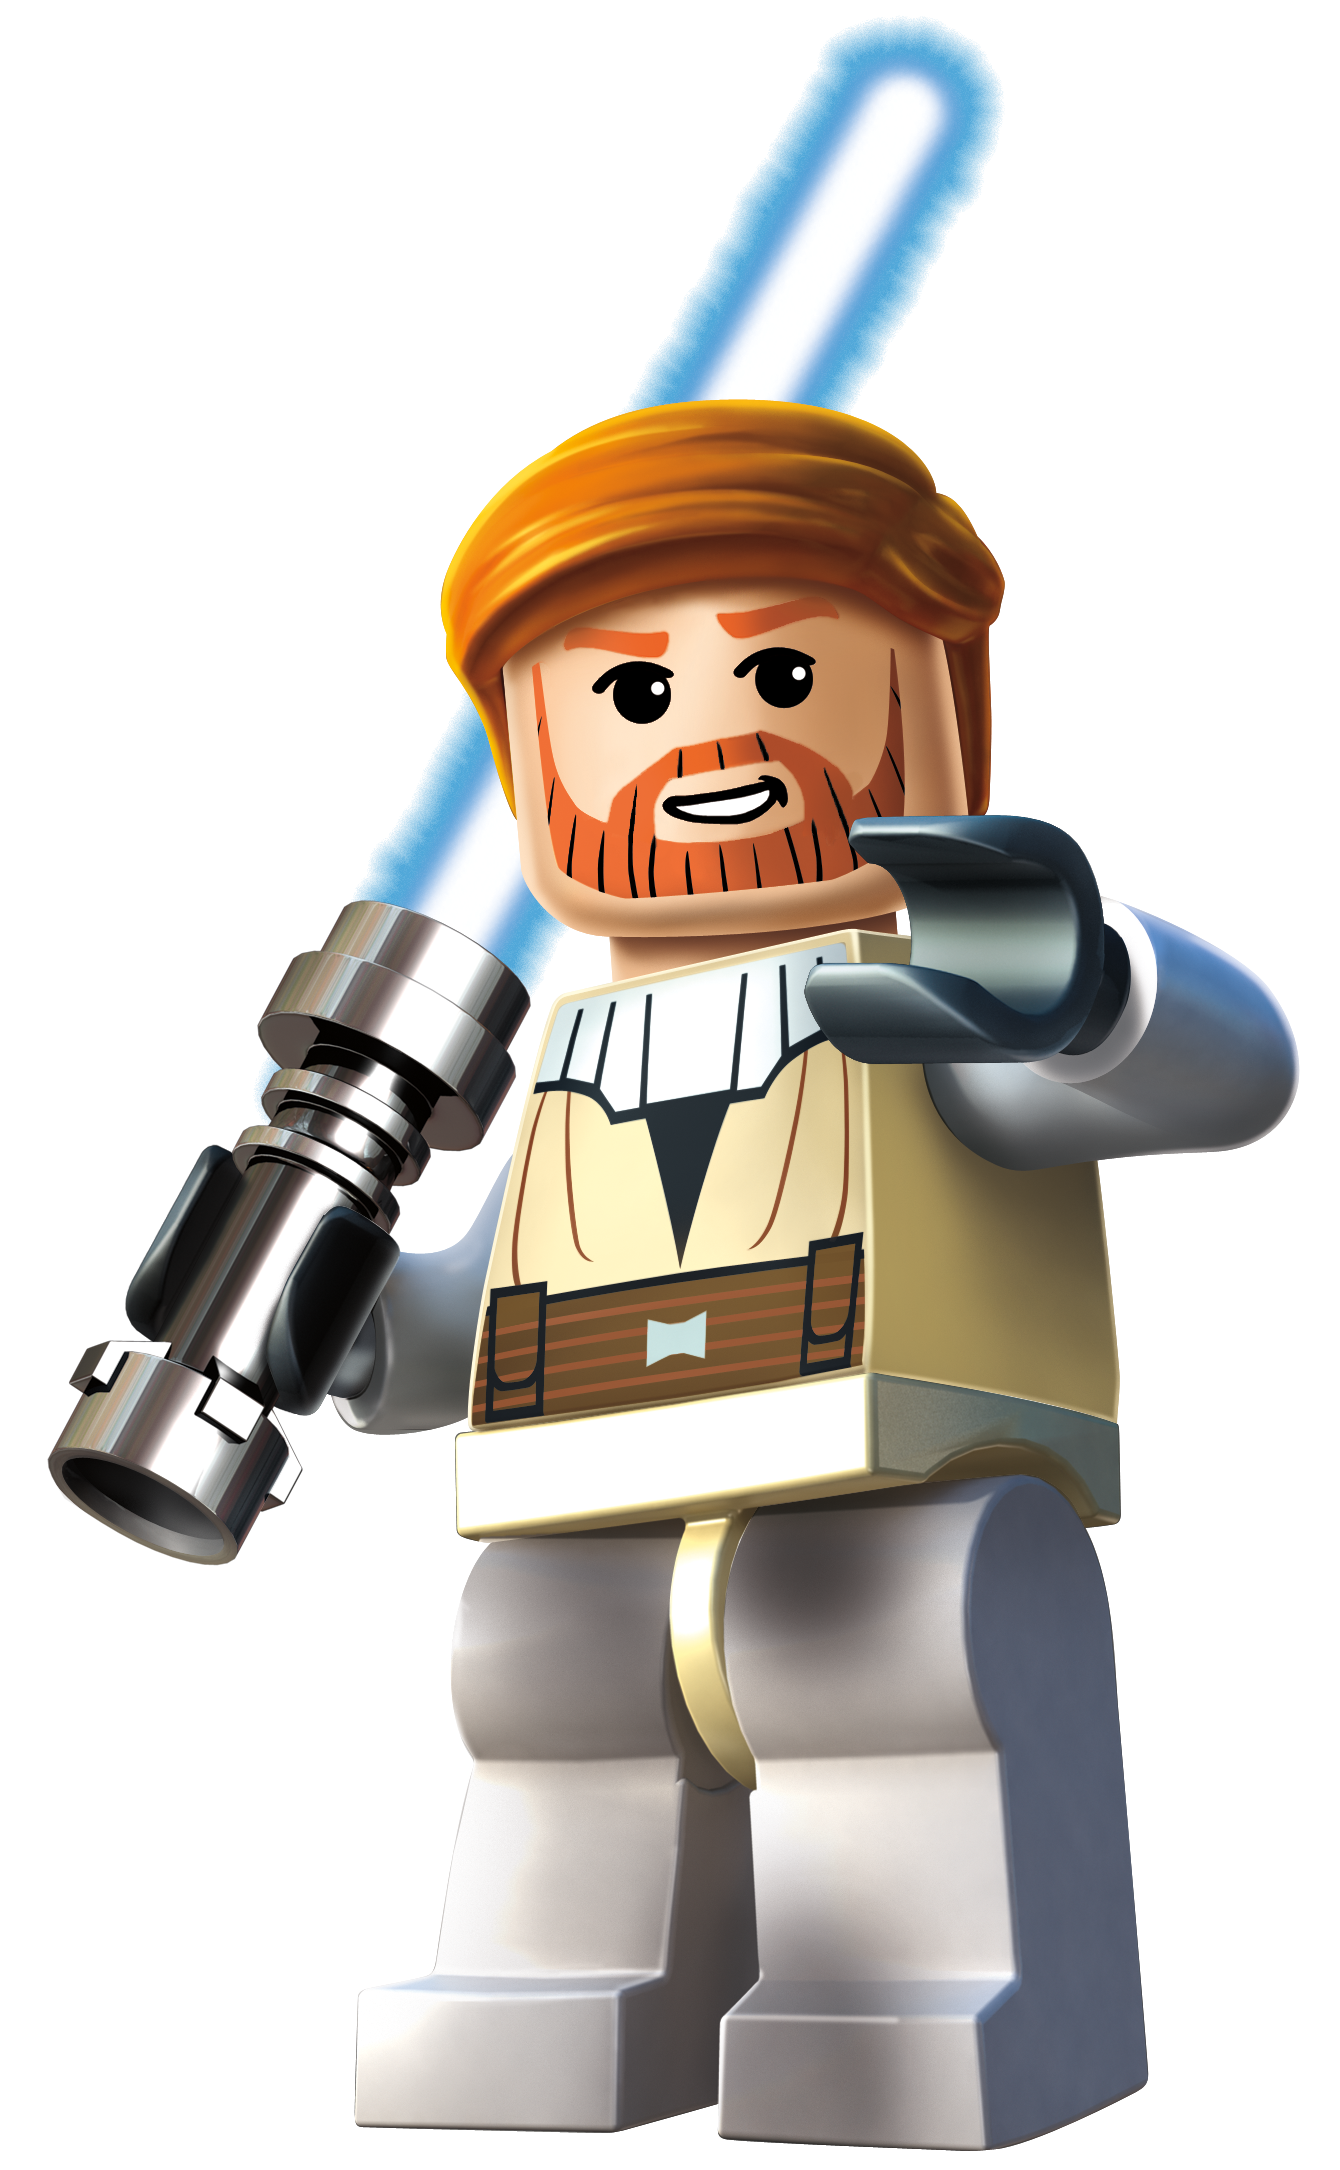 Lego star wars logo clipart vector free download lego star wars characters - Google Search | Liv to Bake | Pinterest ... vector free download